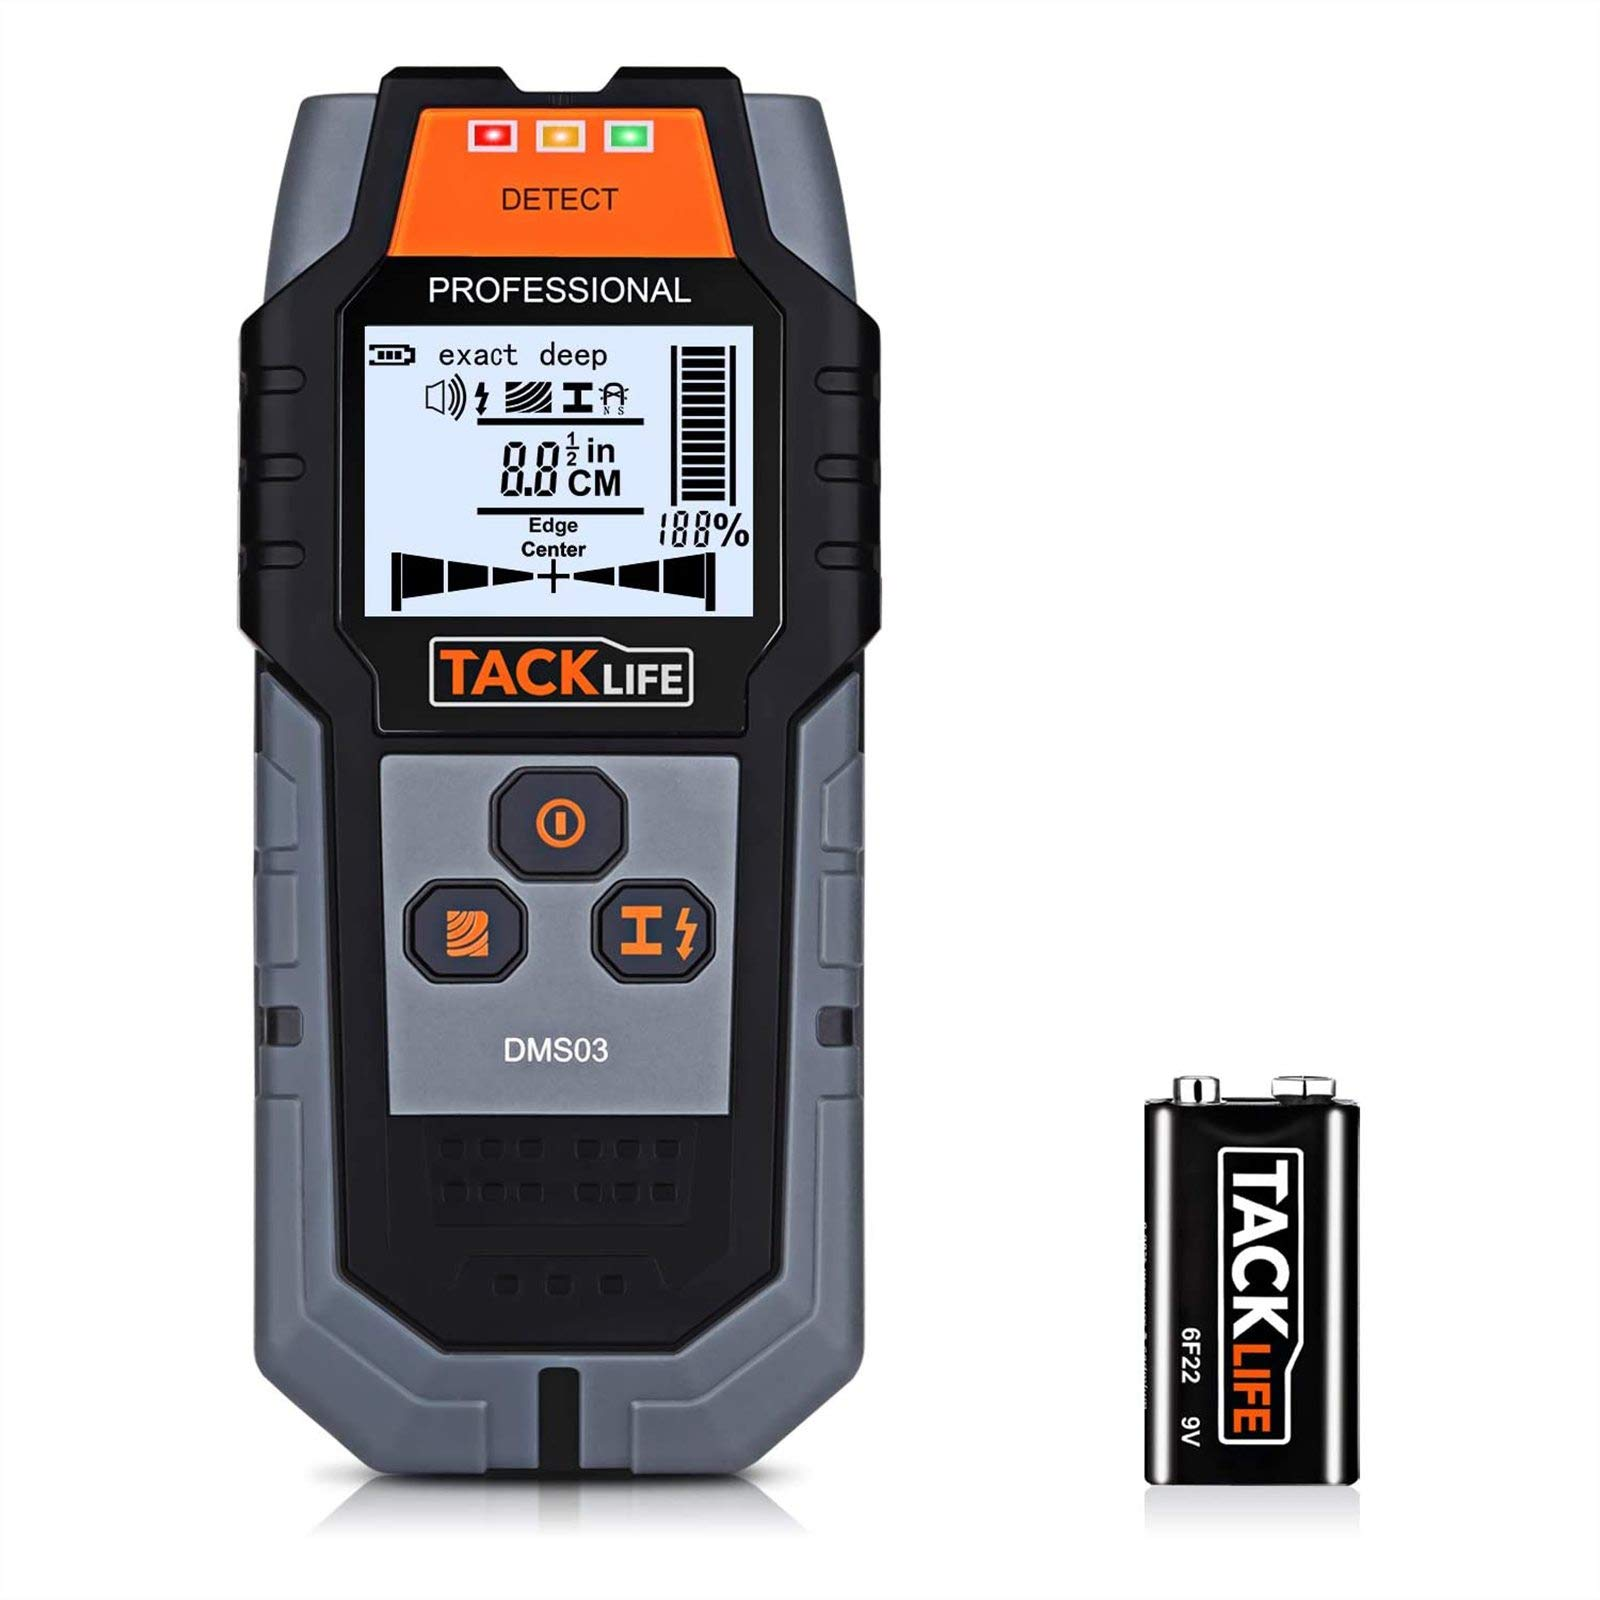 TACKLIFE Stud Finder Upgraded Wall Scanner, 4 in 1 Center Finding Electronic Wall Detector Finders with Warning, Four Scan Modes for Wood Stud/Metal/Live AC Wire/Deep Detecting - New Version DMS03